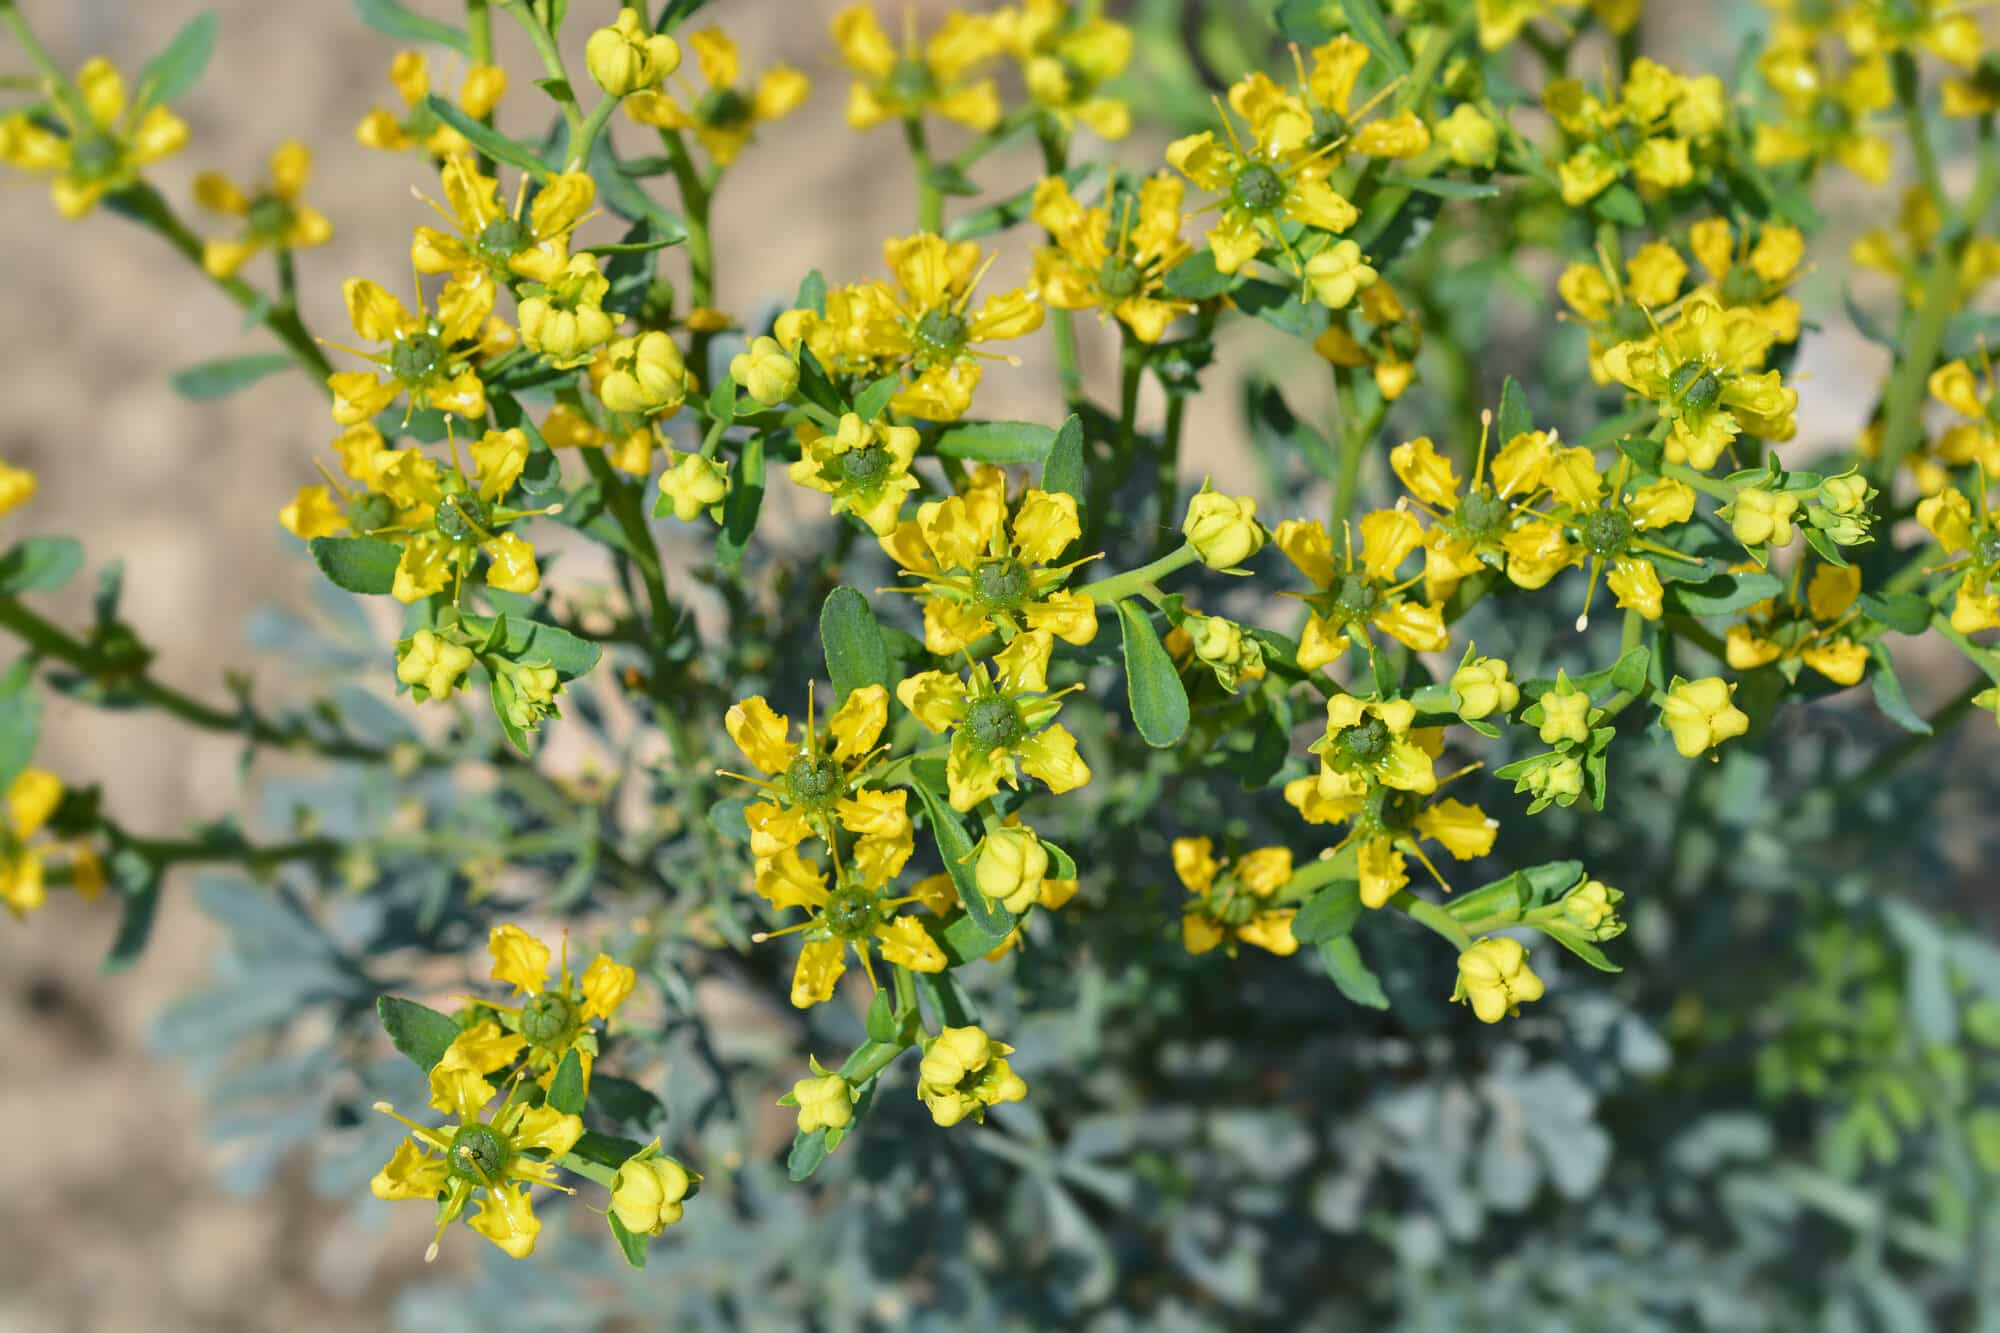 Common Rue: A Bitter But Valuable Ingredient